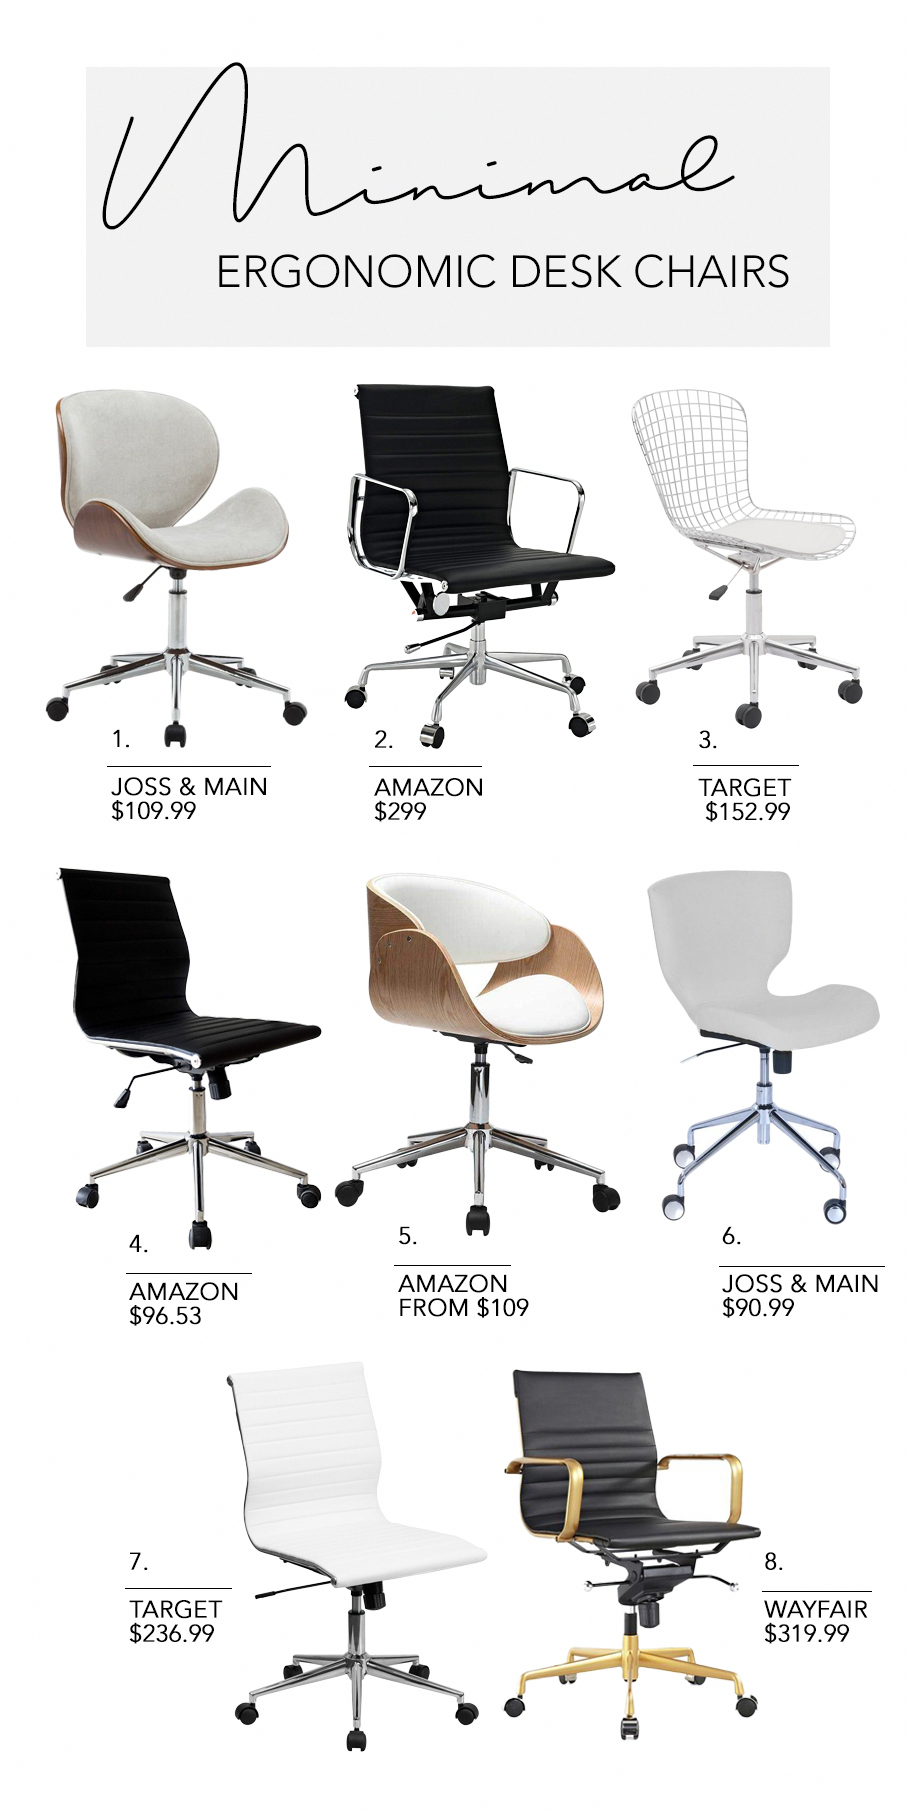 8 Minimal Ergonomic Desk Chairs 5 Minimalist Home Office Workspace Productivity Boosting Tips Hey D Minimalist Desk Office Desk Chair Ergonomic Desk Chair